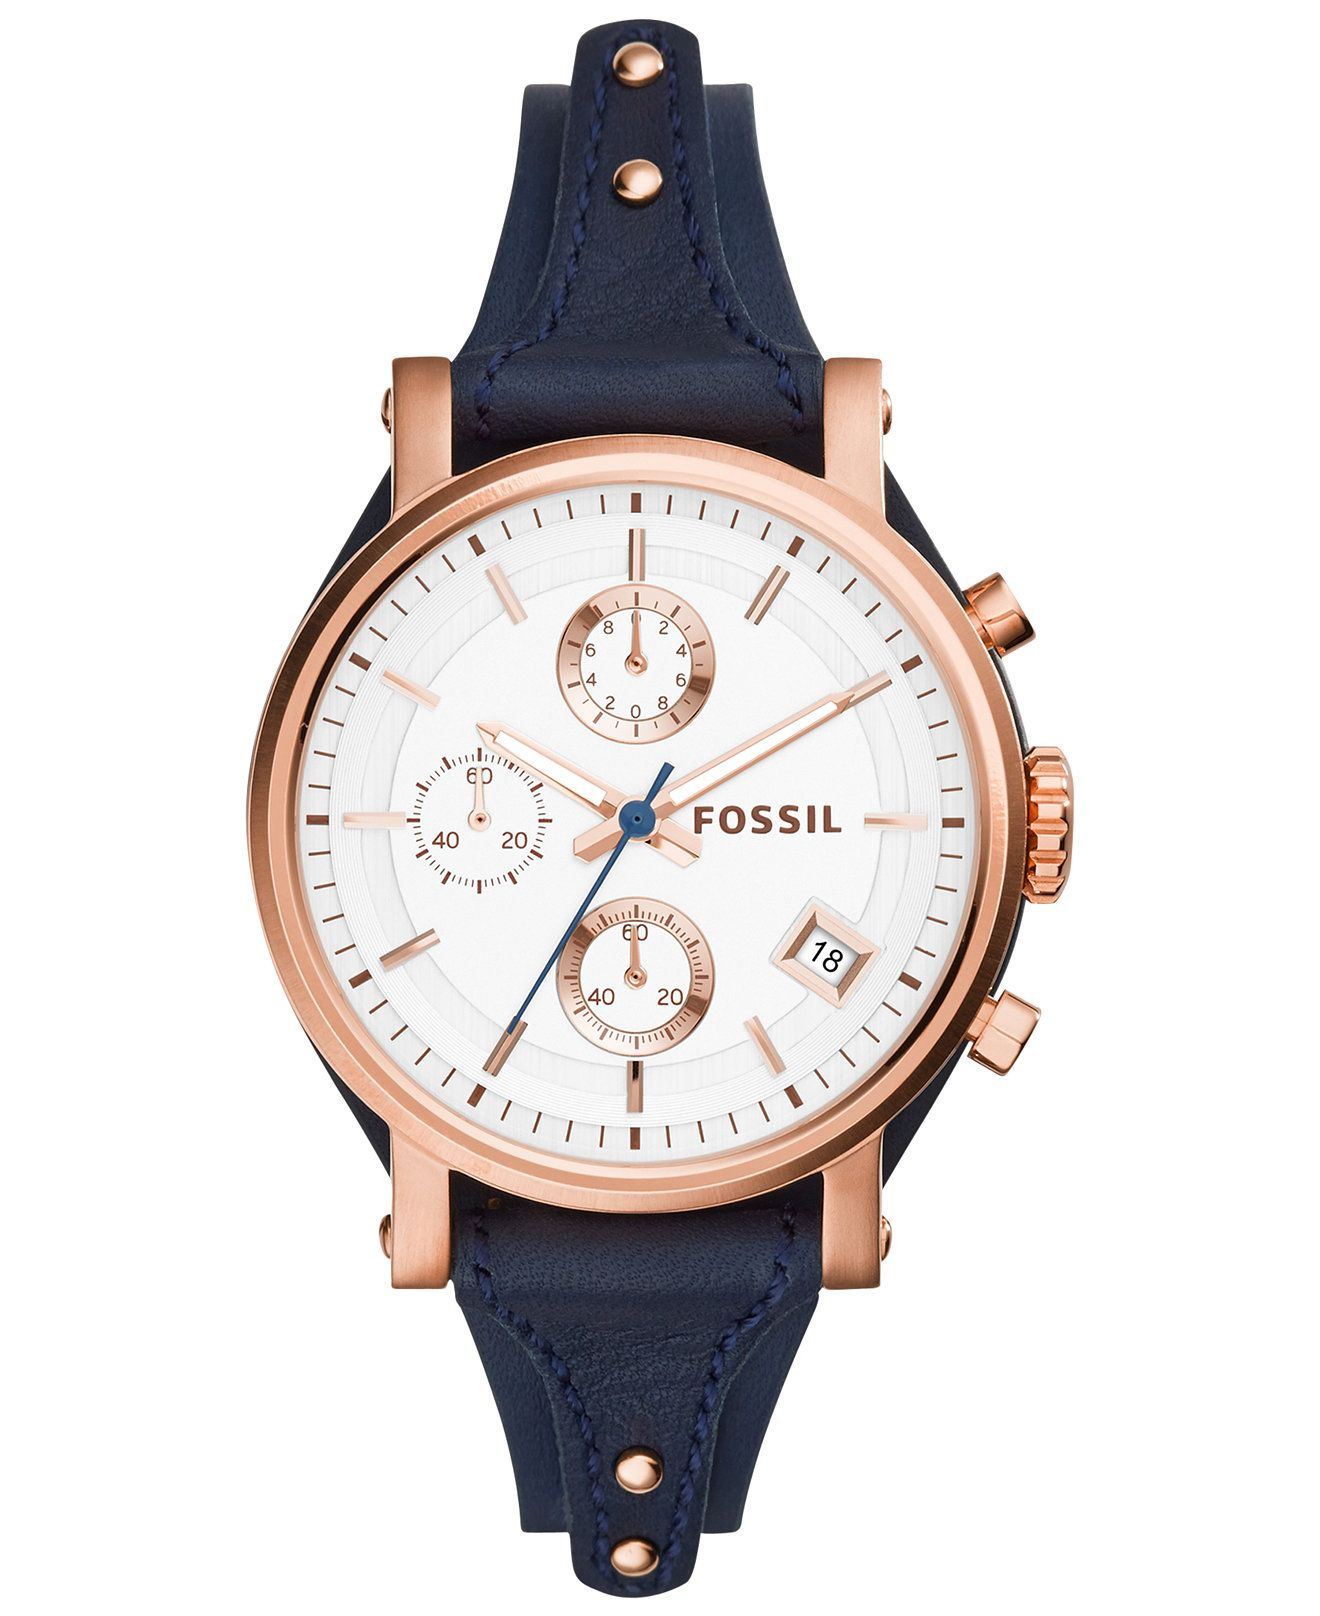 31f81ed55ce Fossil Womens Chronograph Watch - love love love the rose gold with the  blue leather